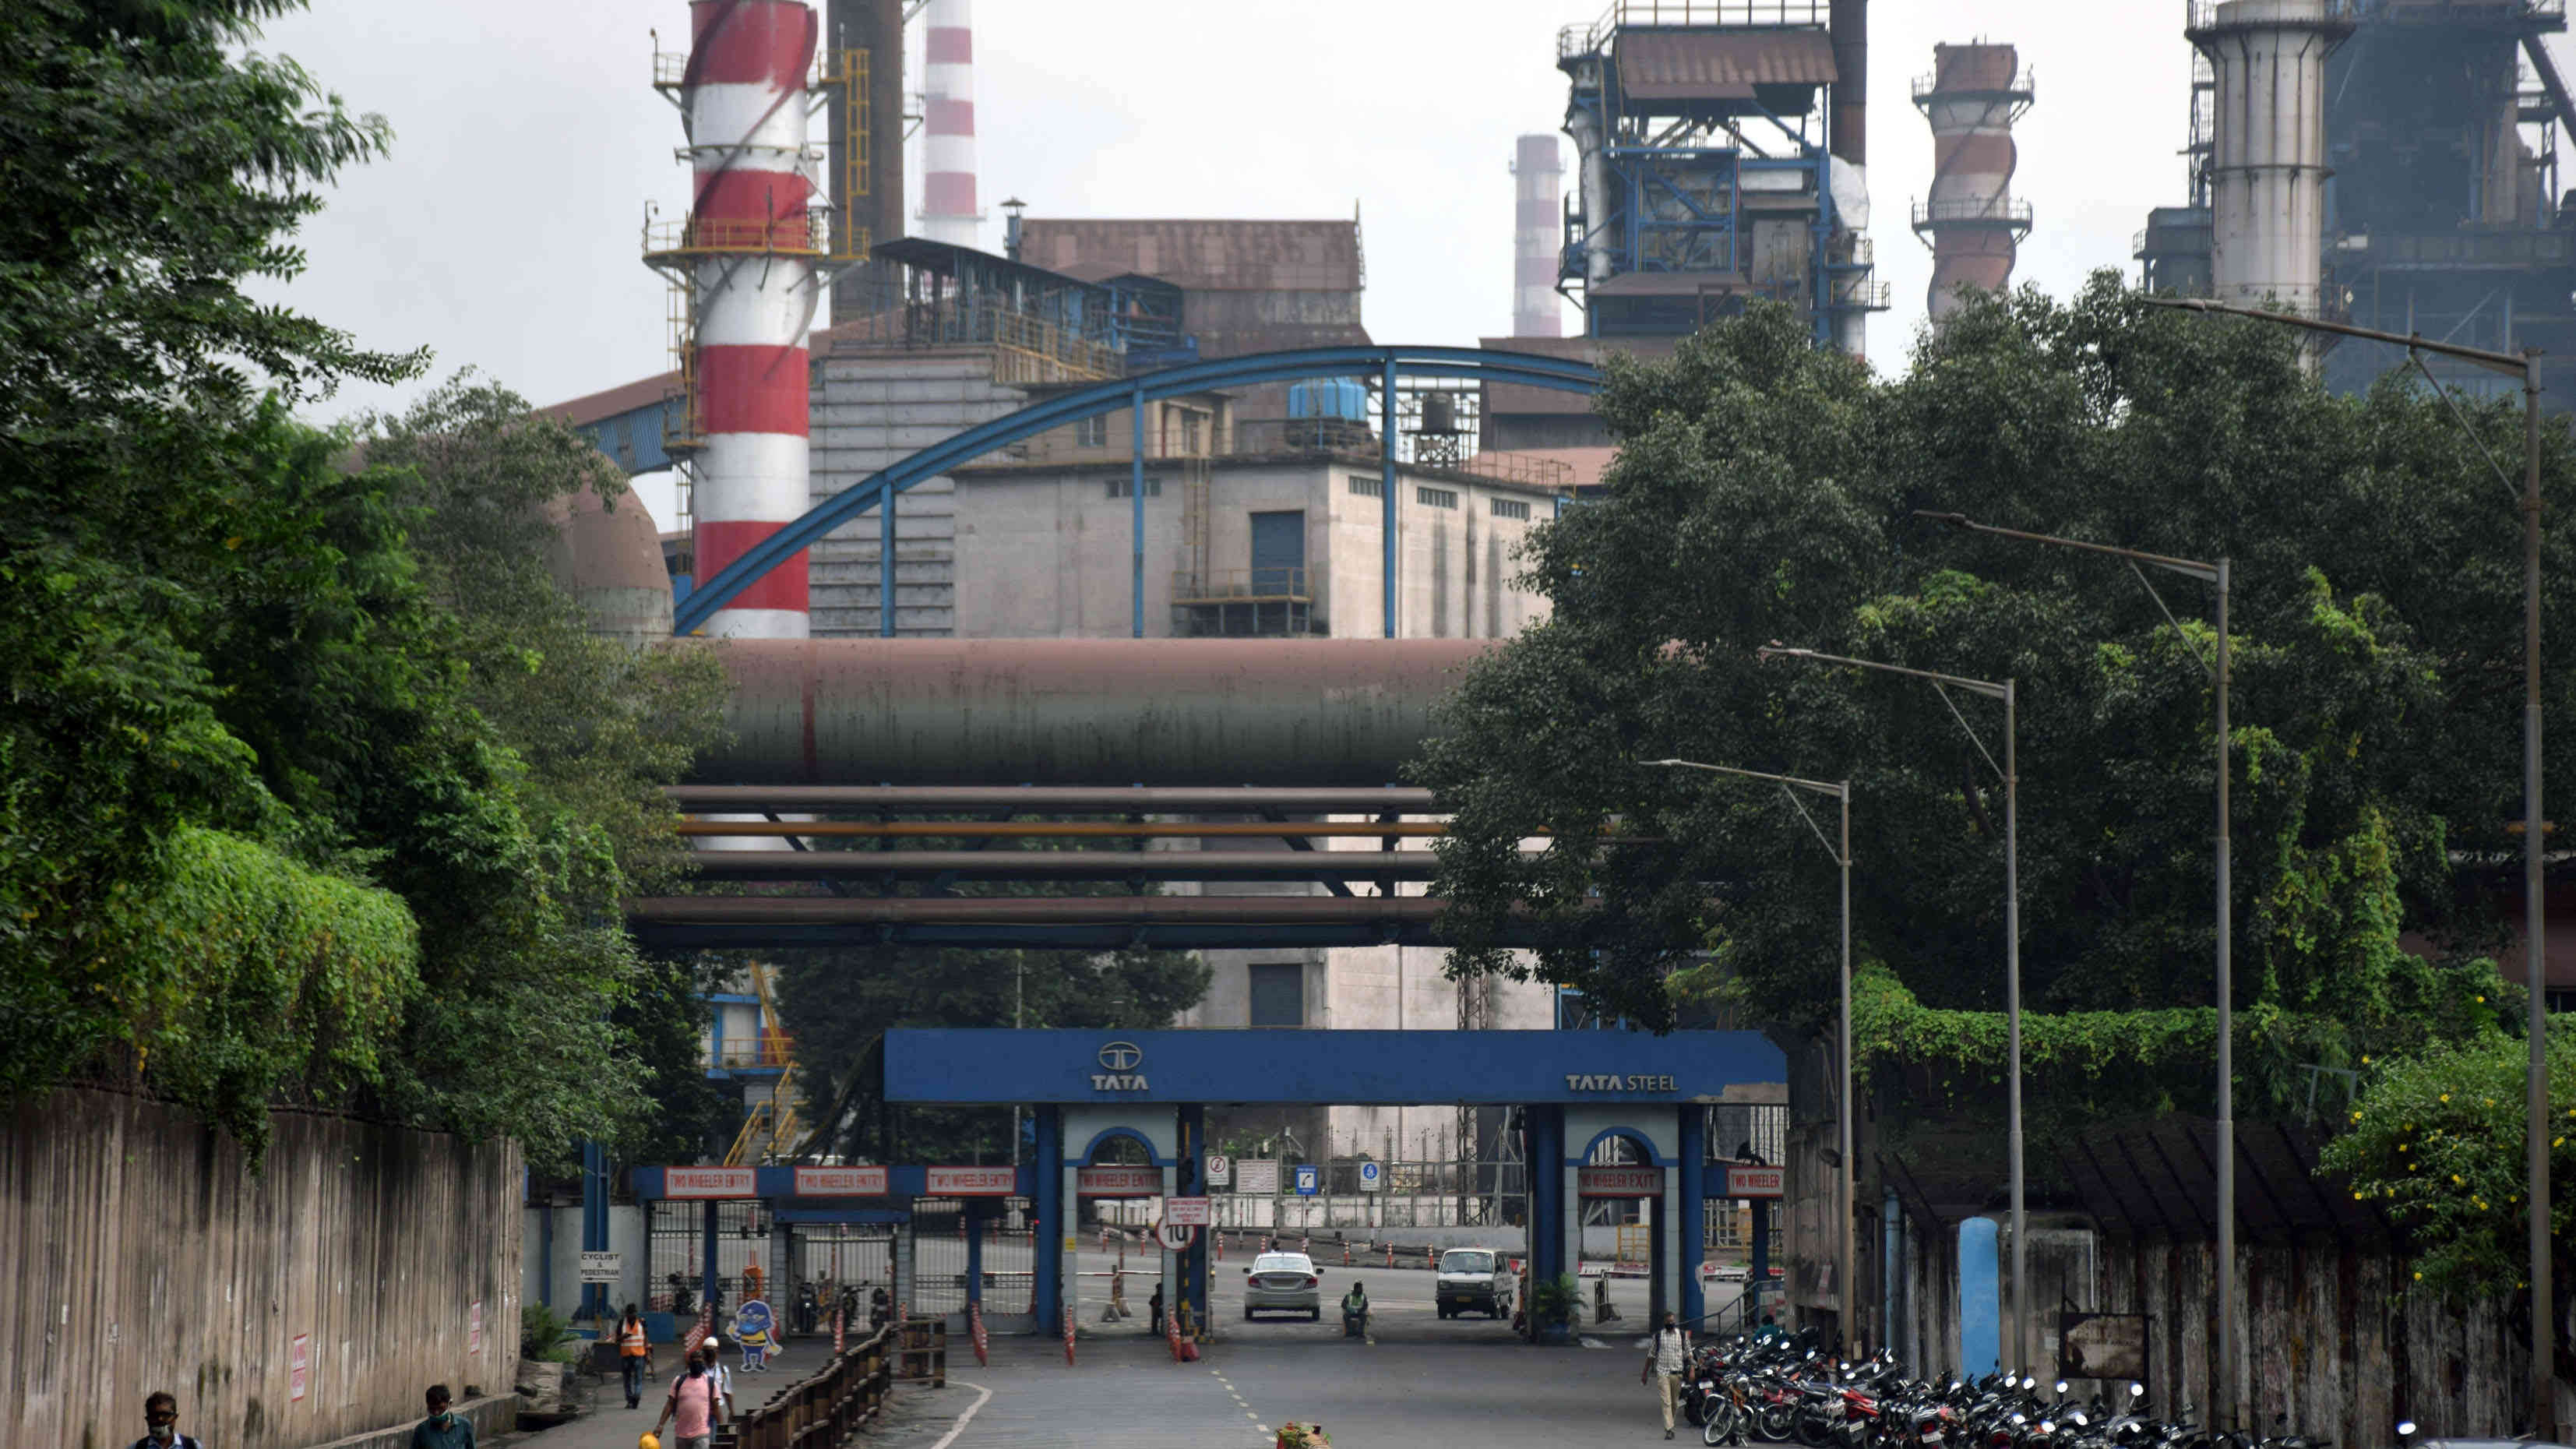 Tata Steel's Jamshedpur plant where the mishap took place on Tuesday.